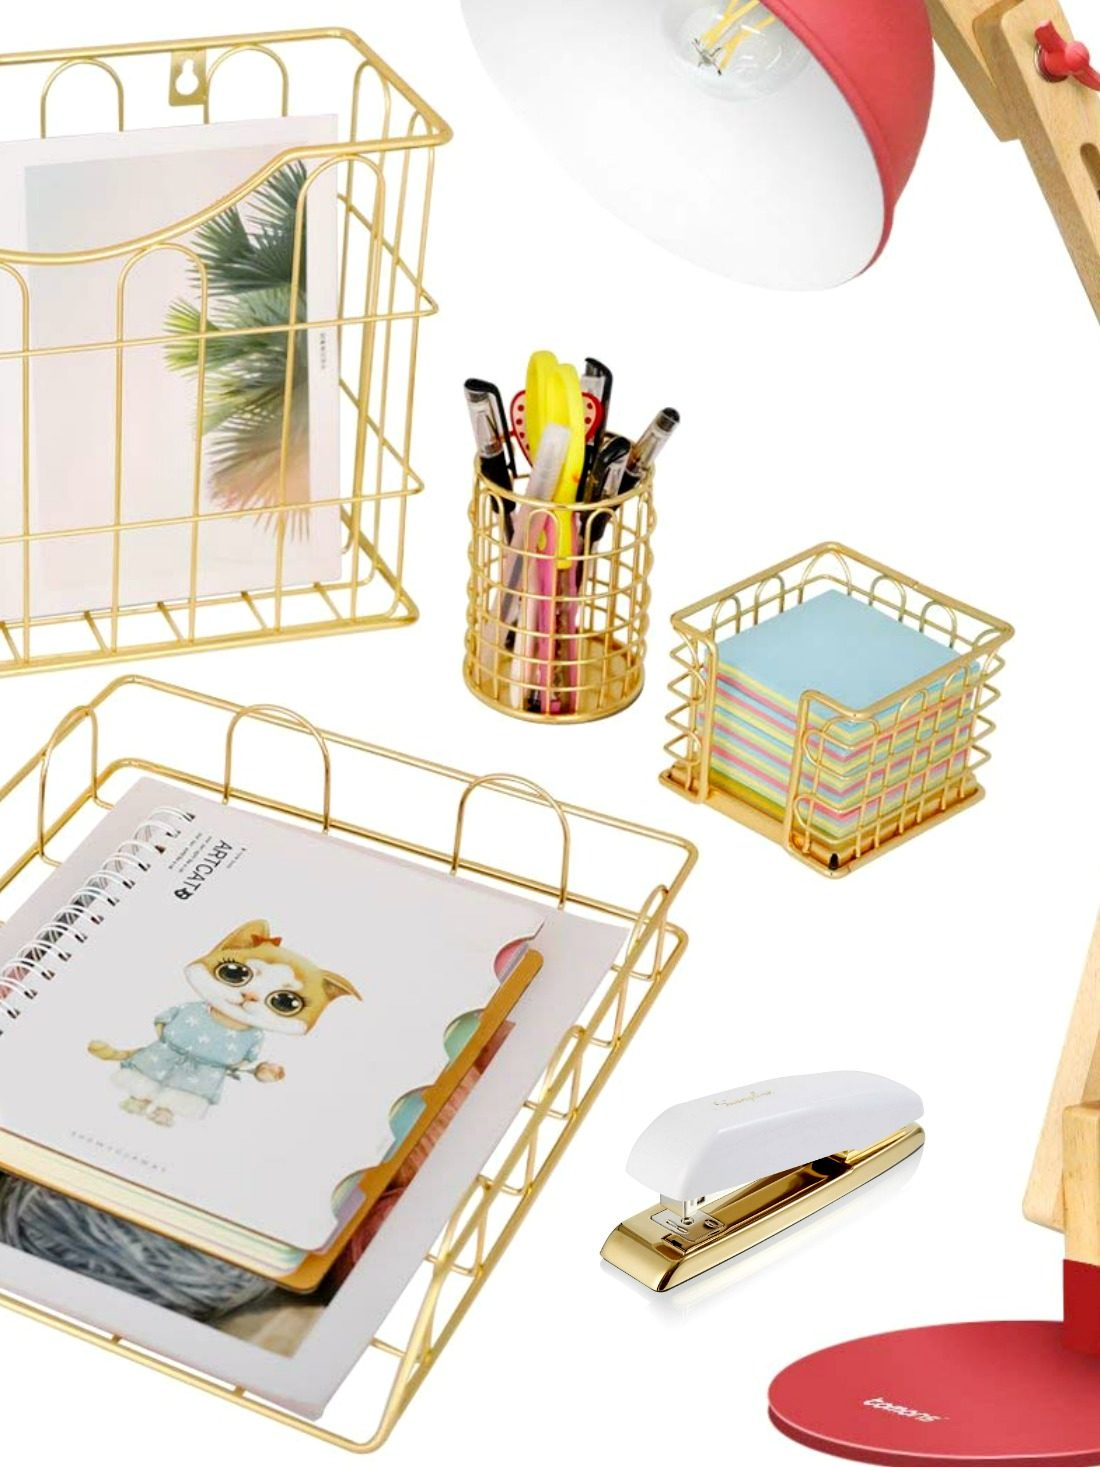 We have outlined everything from the cool meets simple yet something that's modern in our 15 best desk accessories for women. Want to know the secret to make your office look nice? Check out this post!